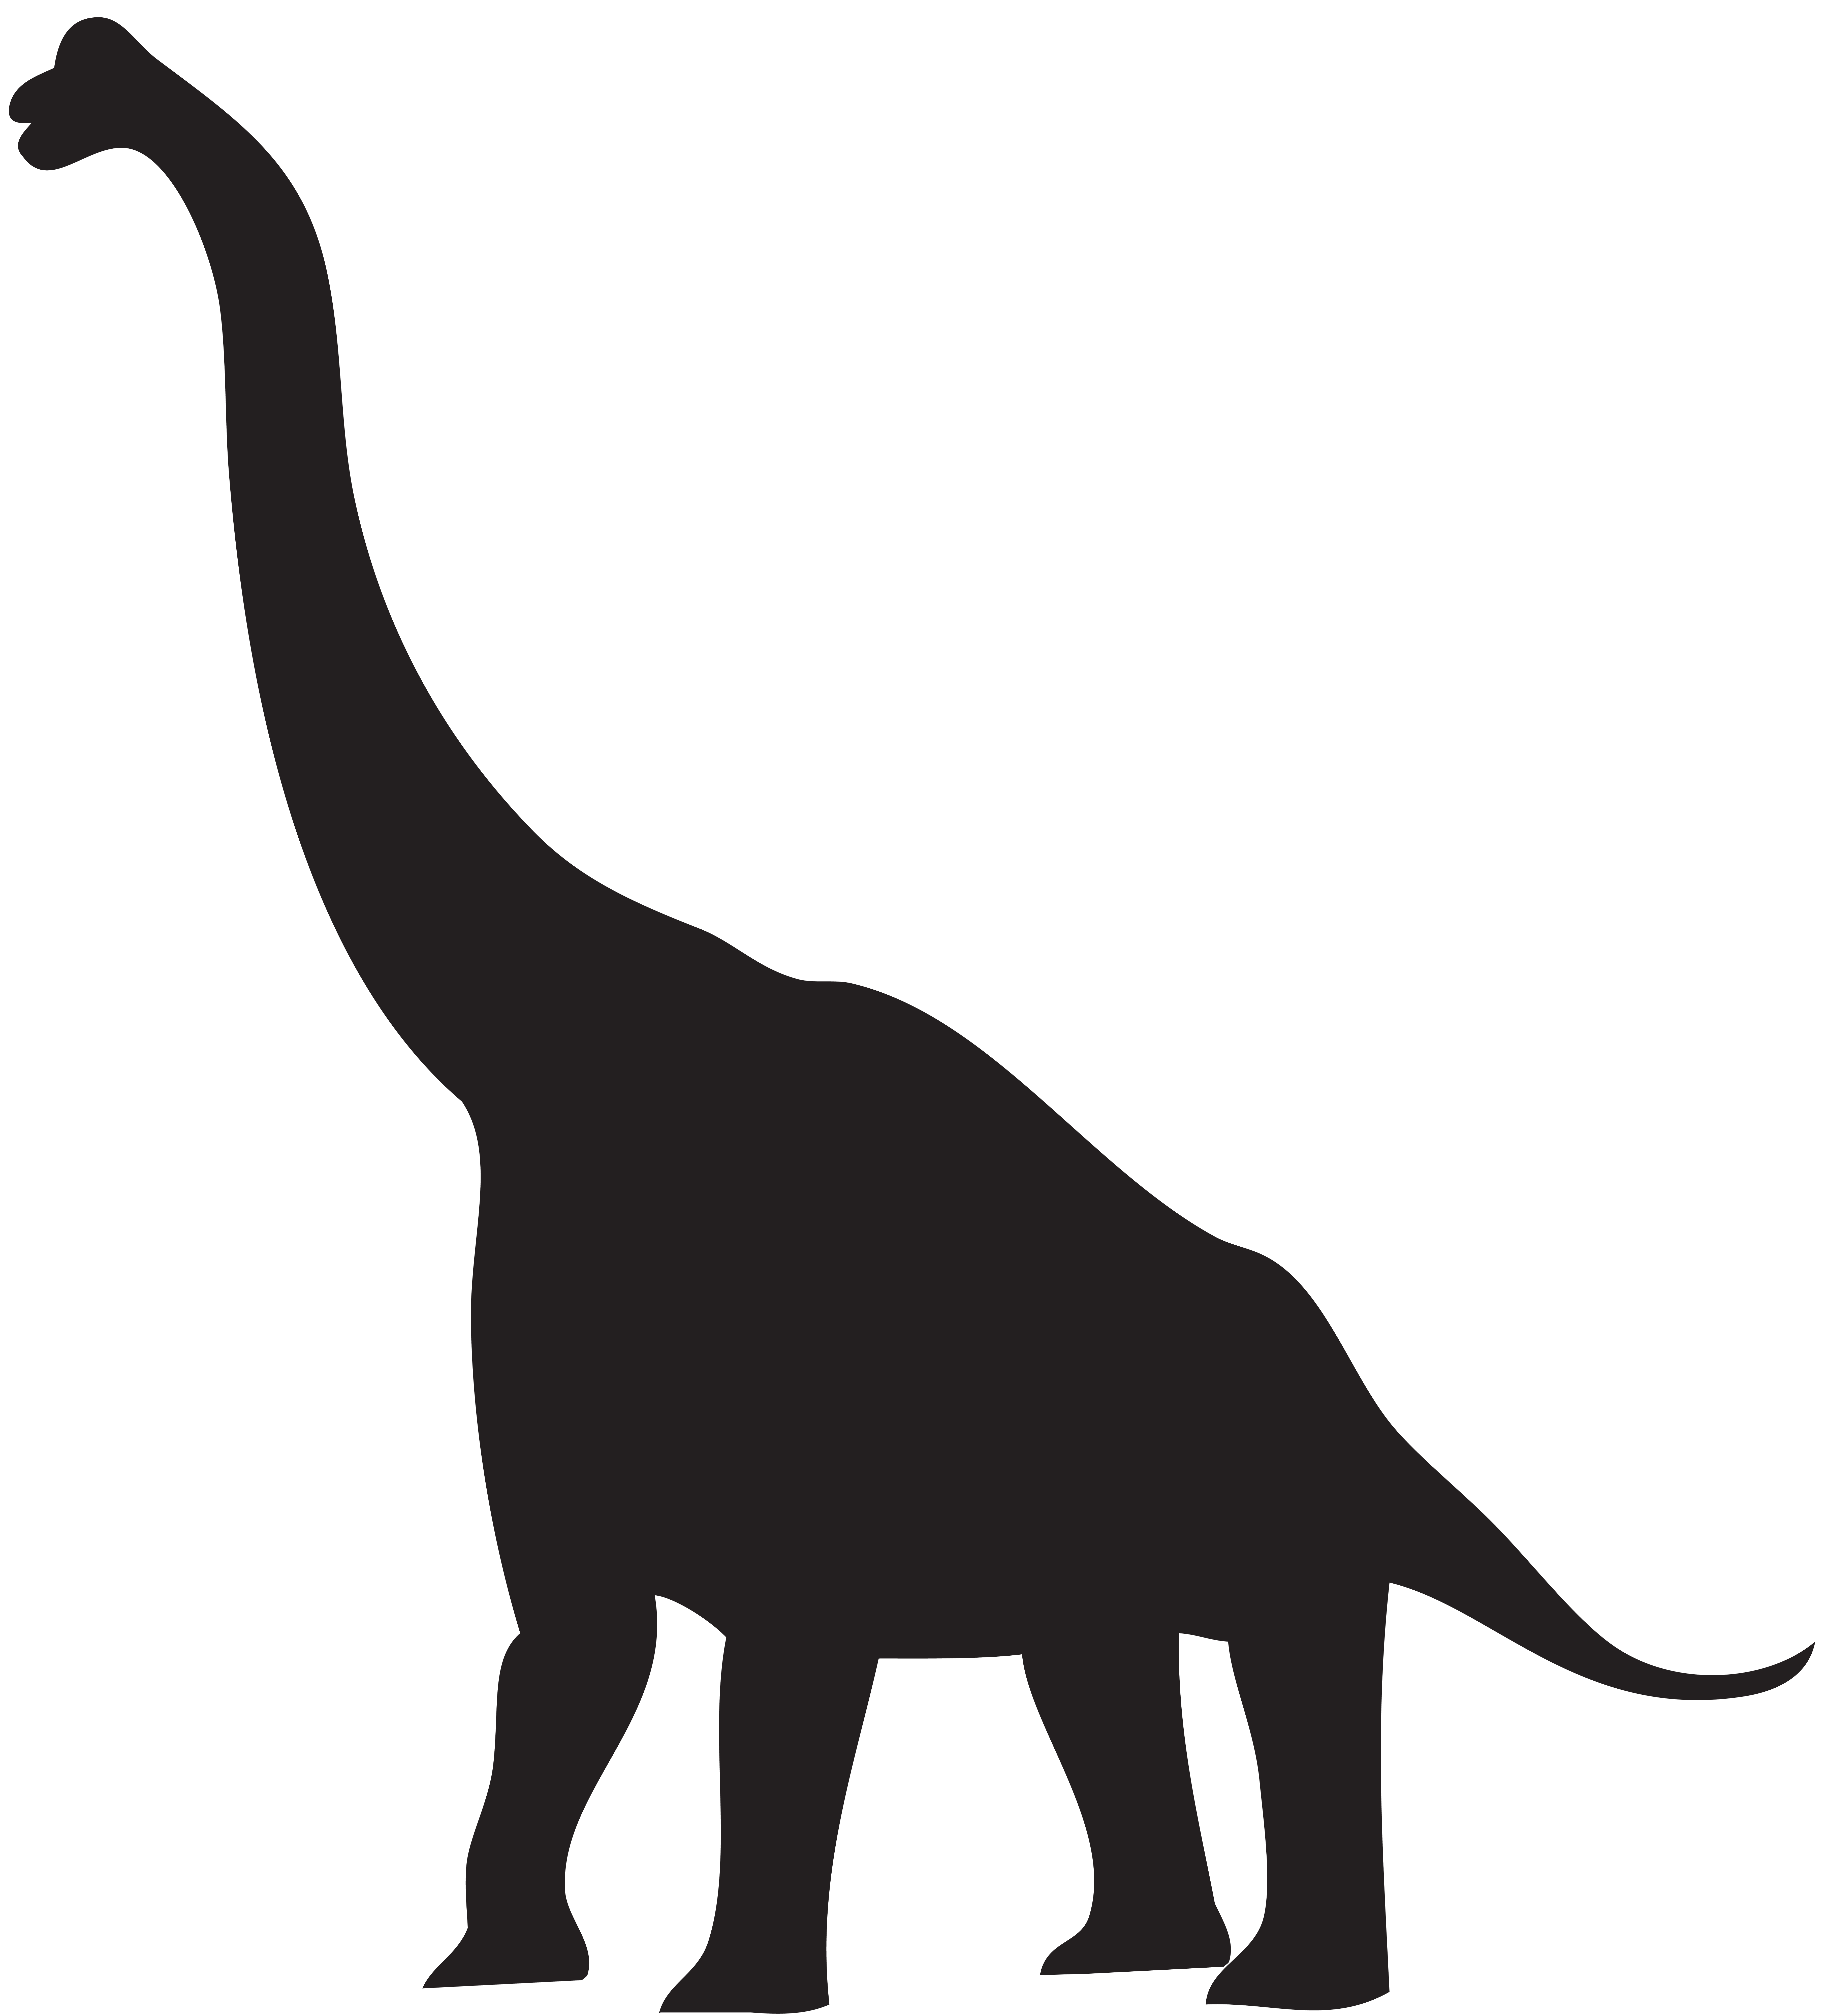 transparent Dinosaur Silhouette Clipart at GetDrawings